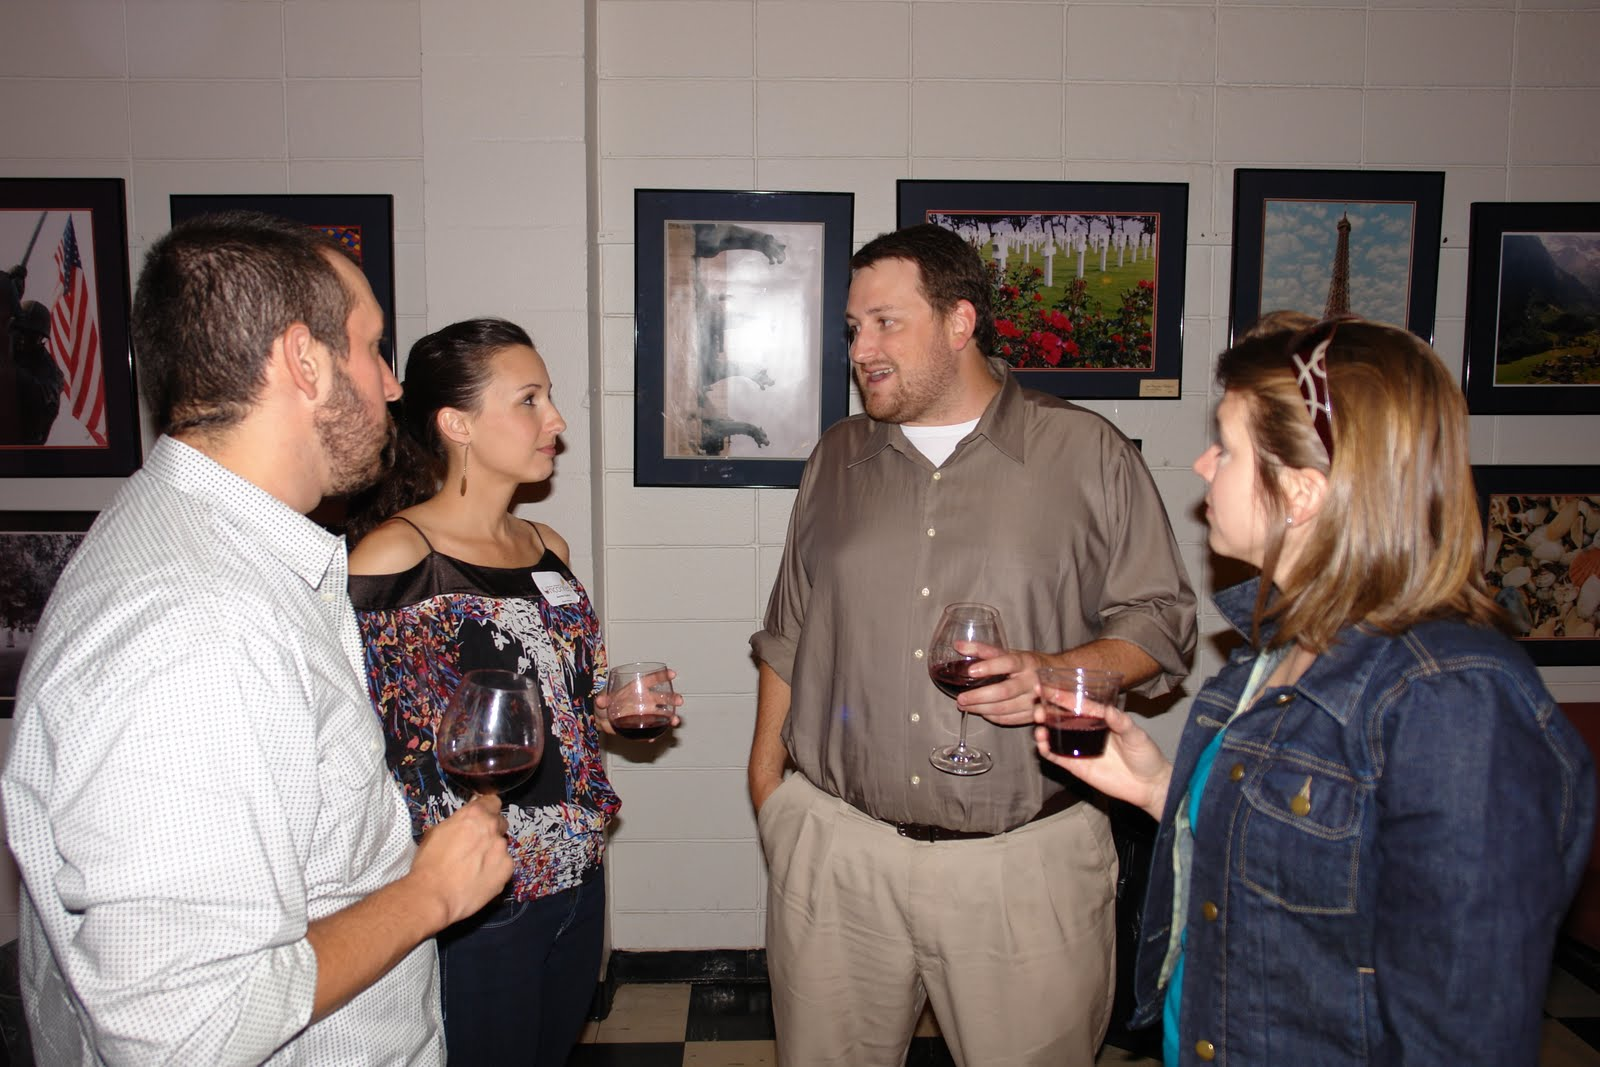 Eusebio Gongora, Jennifer Guillot, Jay Ducote, and Nicole Colvin discuss the wines at BR Uncorked